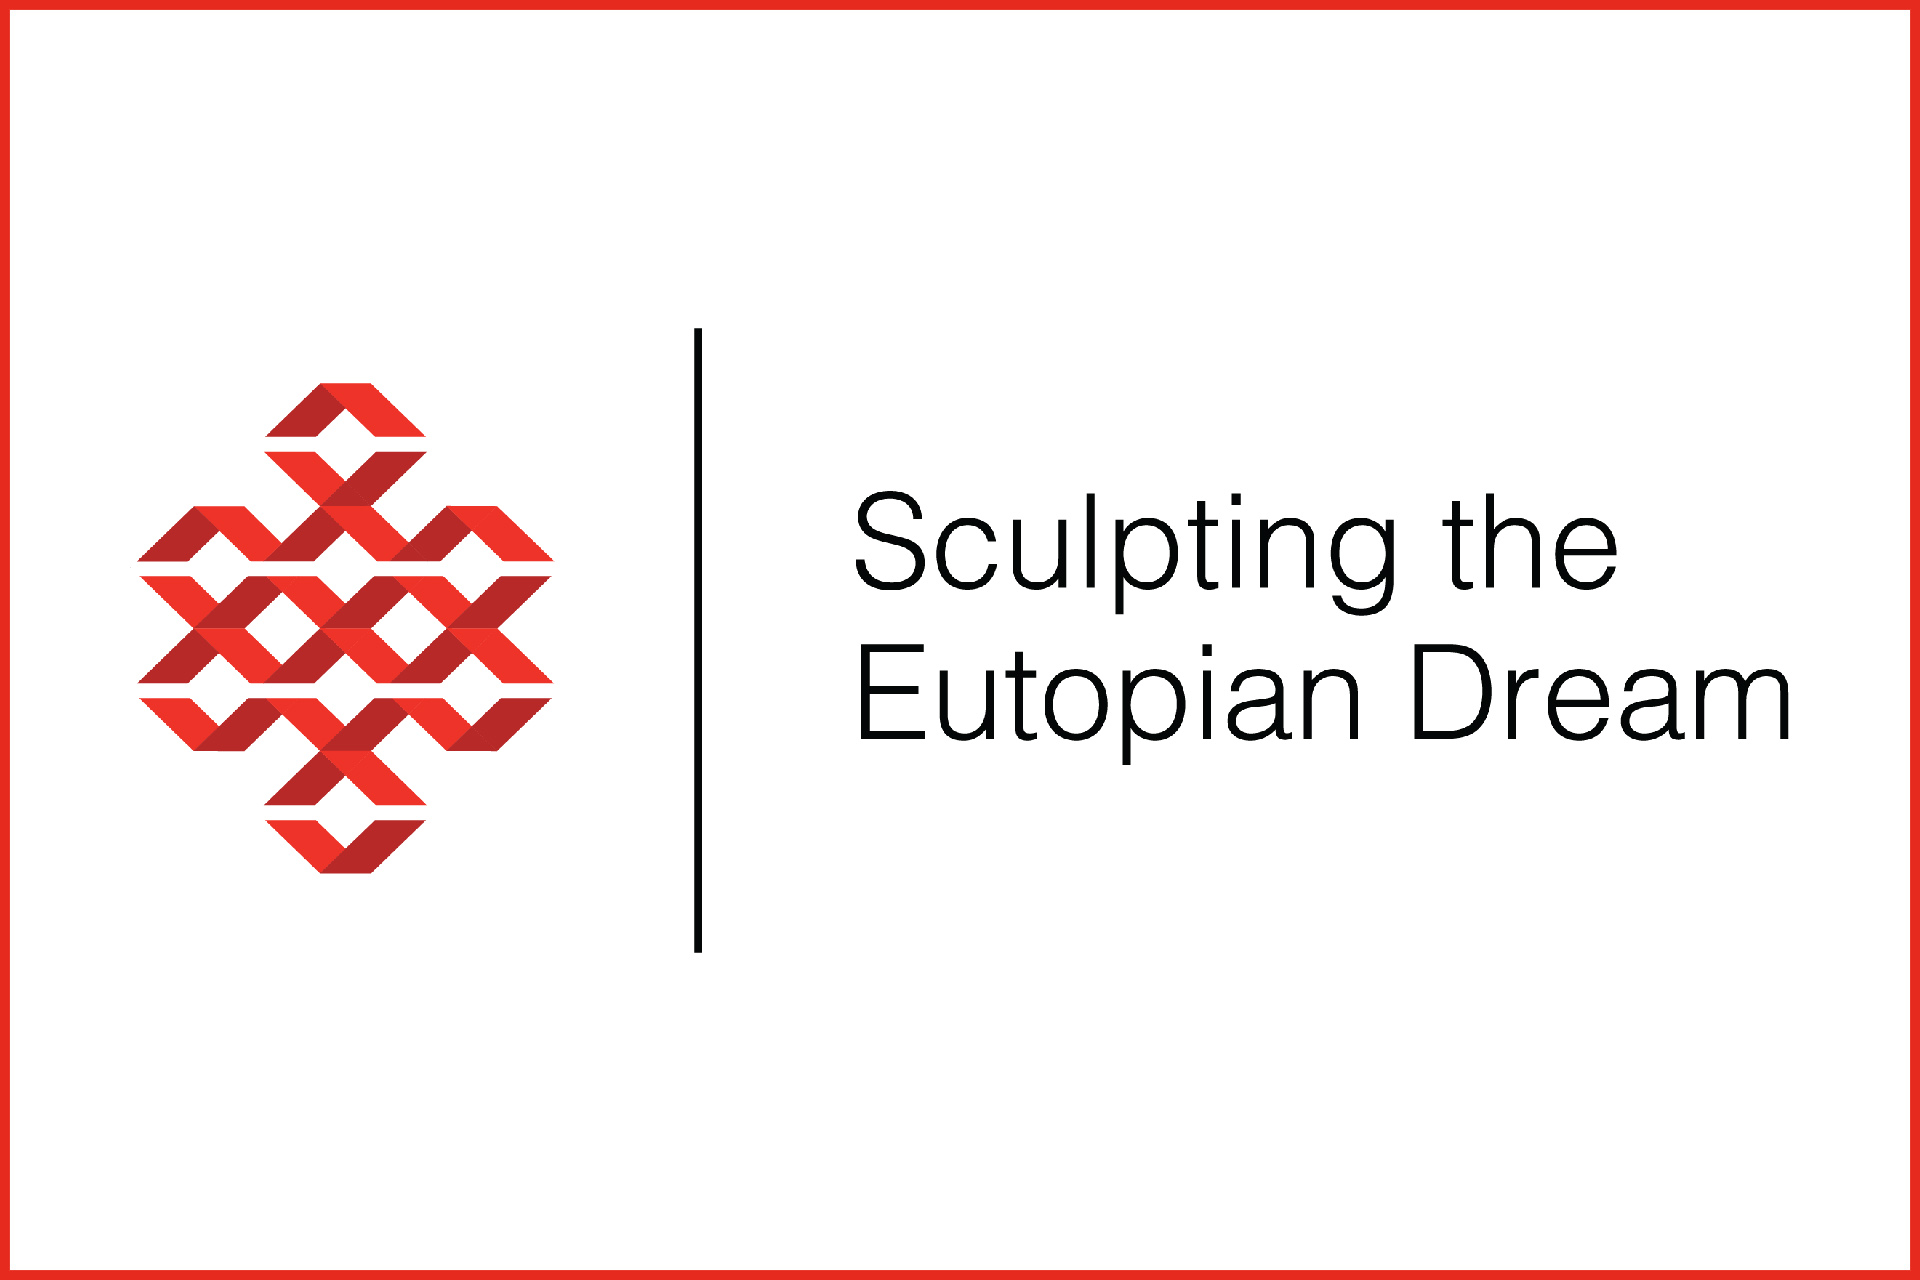 Sculpting the Eutopian Dream